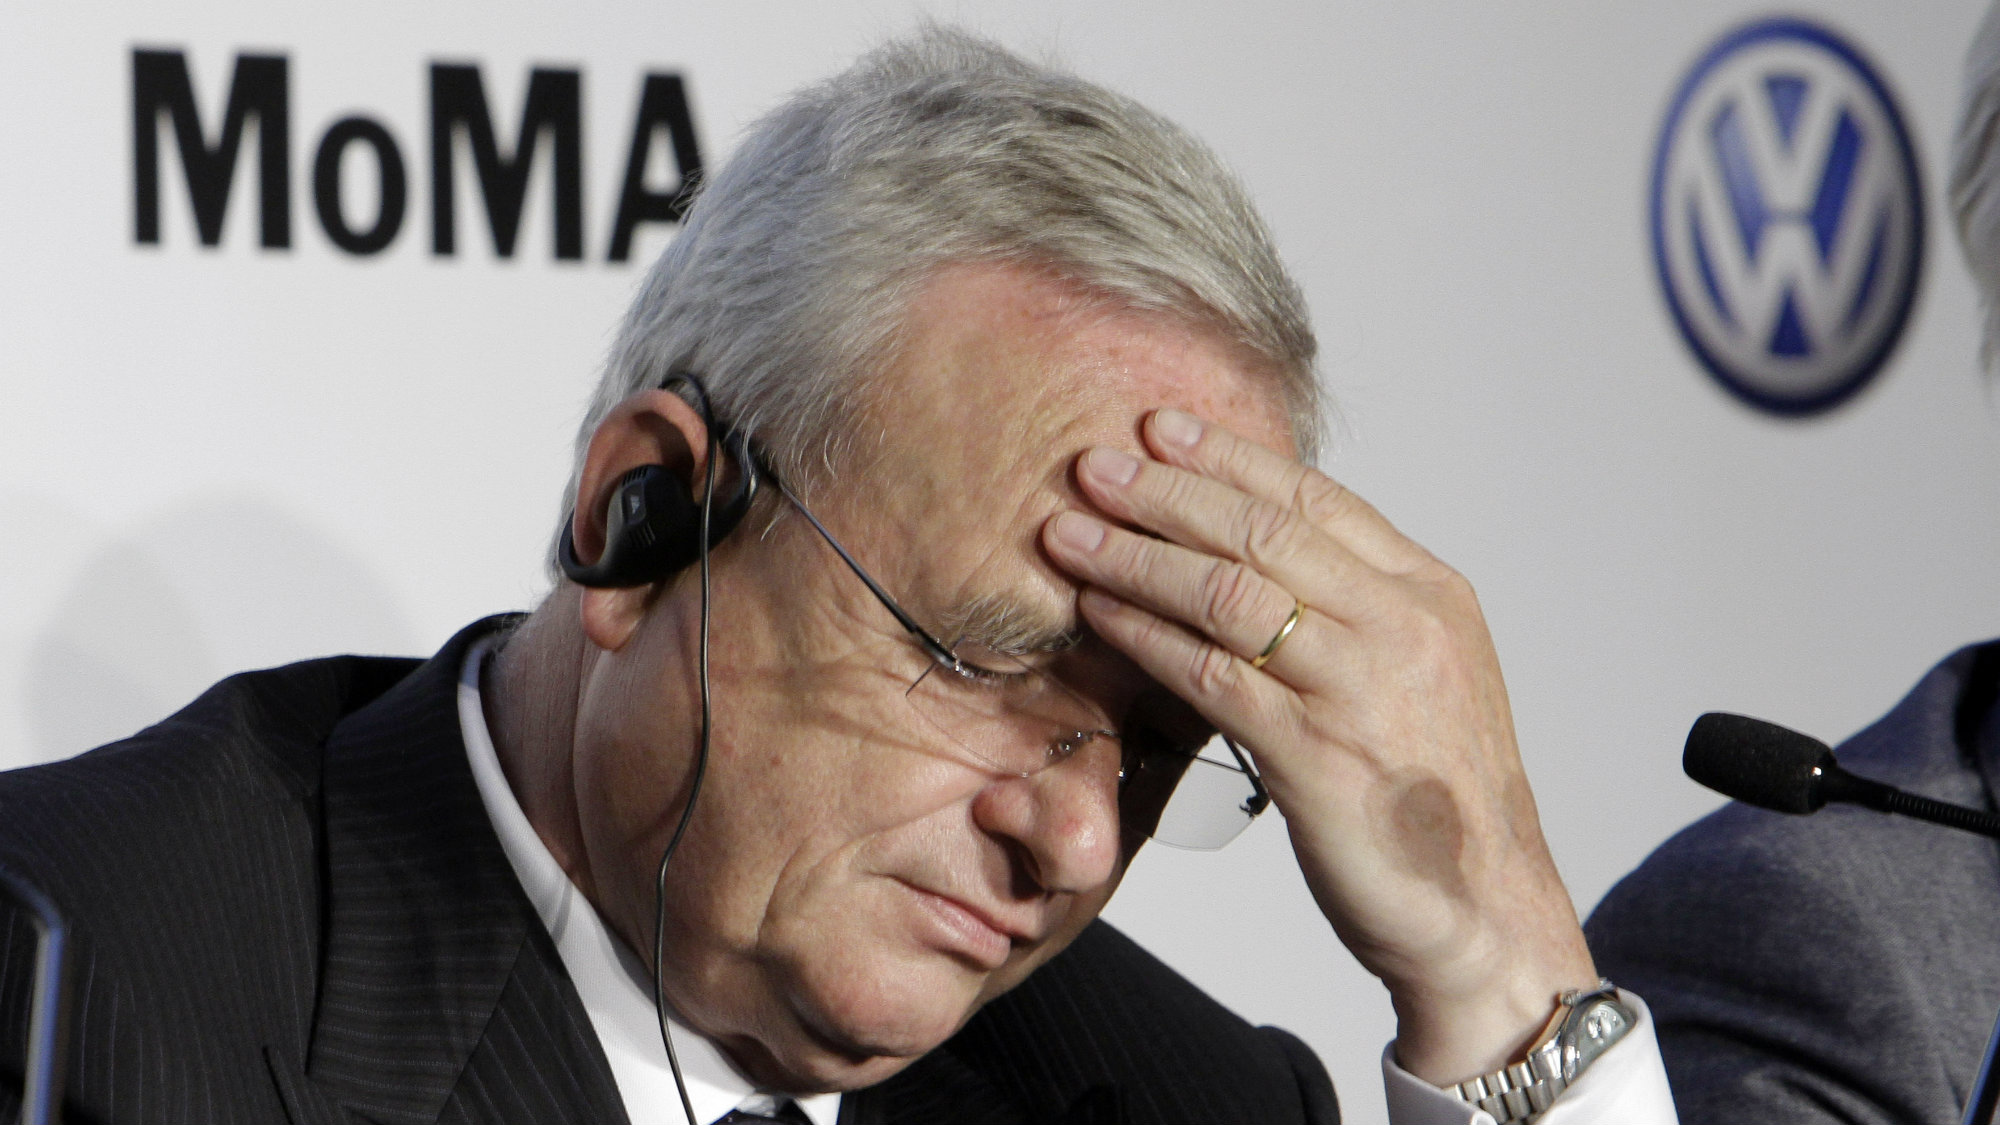 Martin Winterkorn, CEO of Volkswagen, participates in a news conference at New York's Museum of Modern Art.